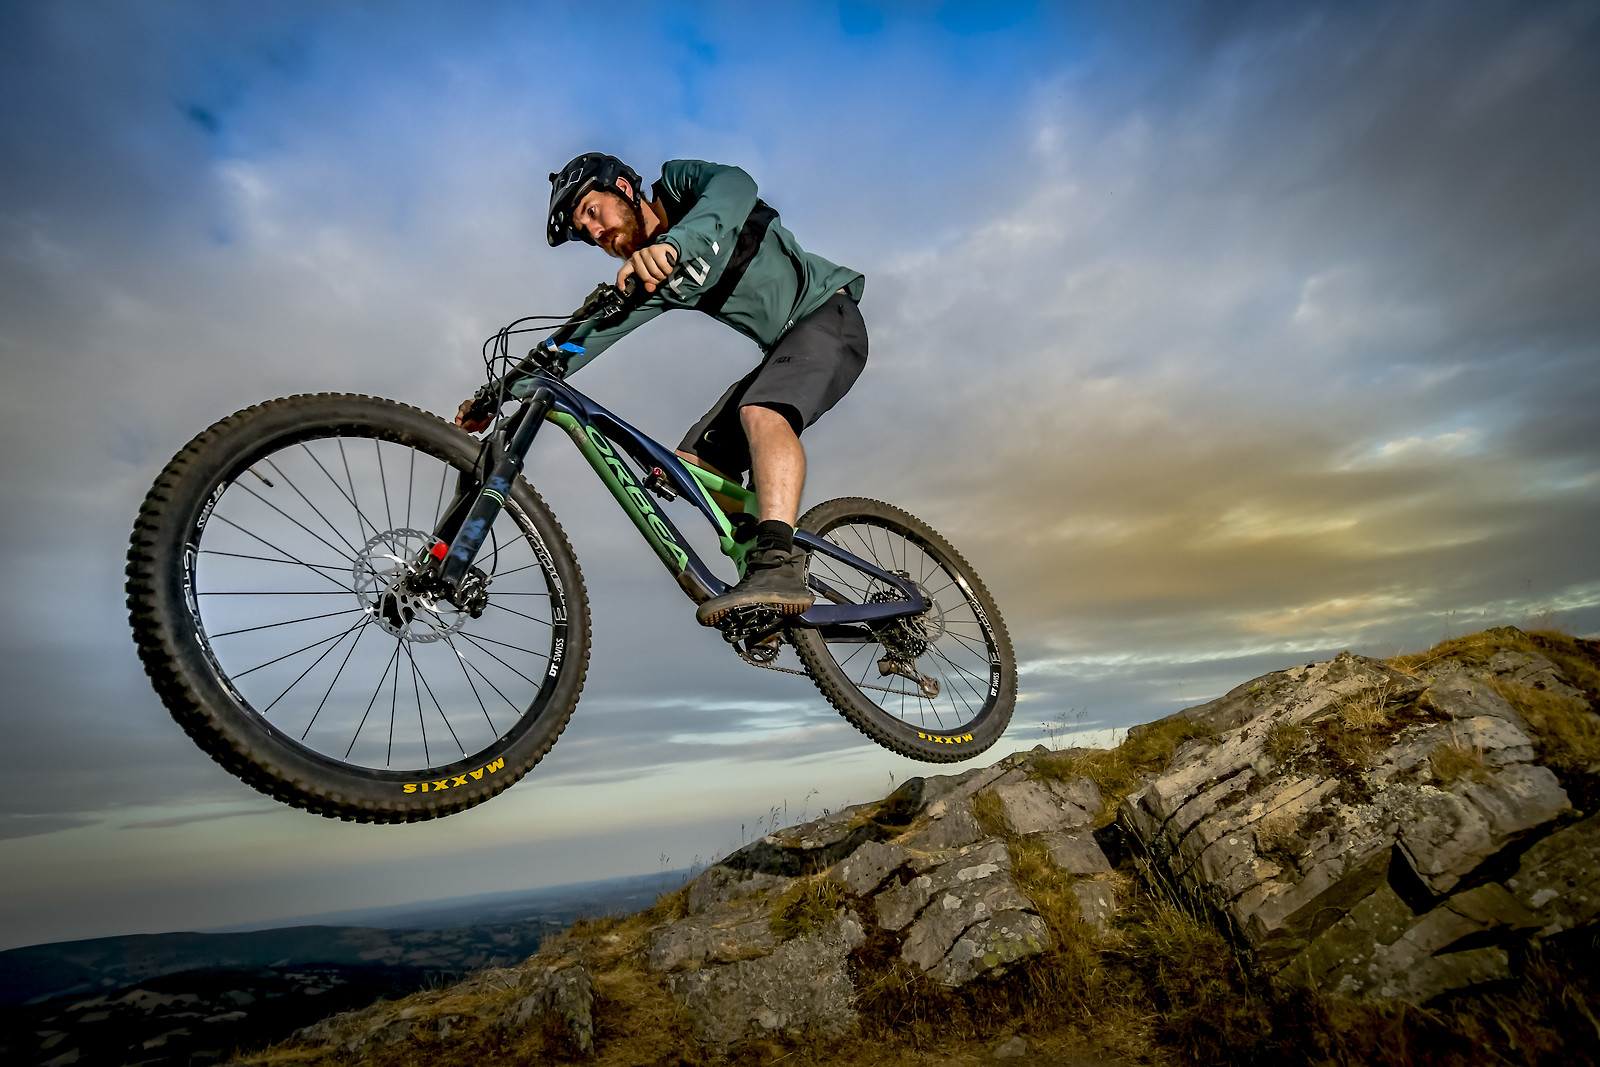 ROB2198 - robbarkerimages2017 - Mountain Biking Pictures - Vital MTB